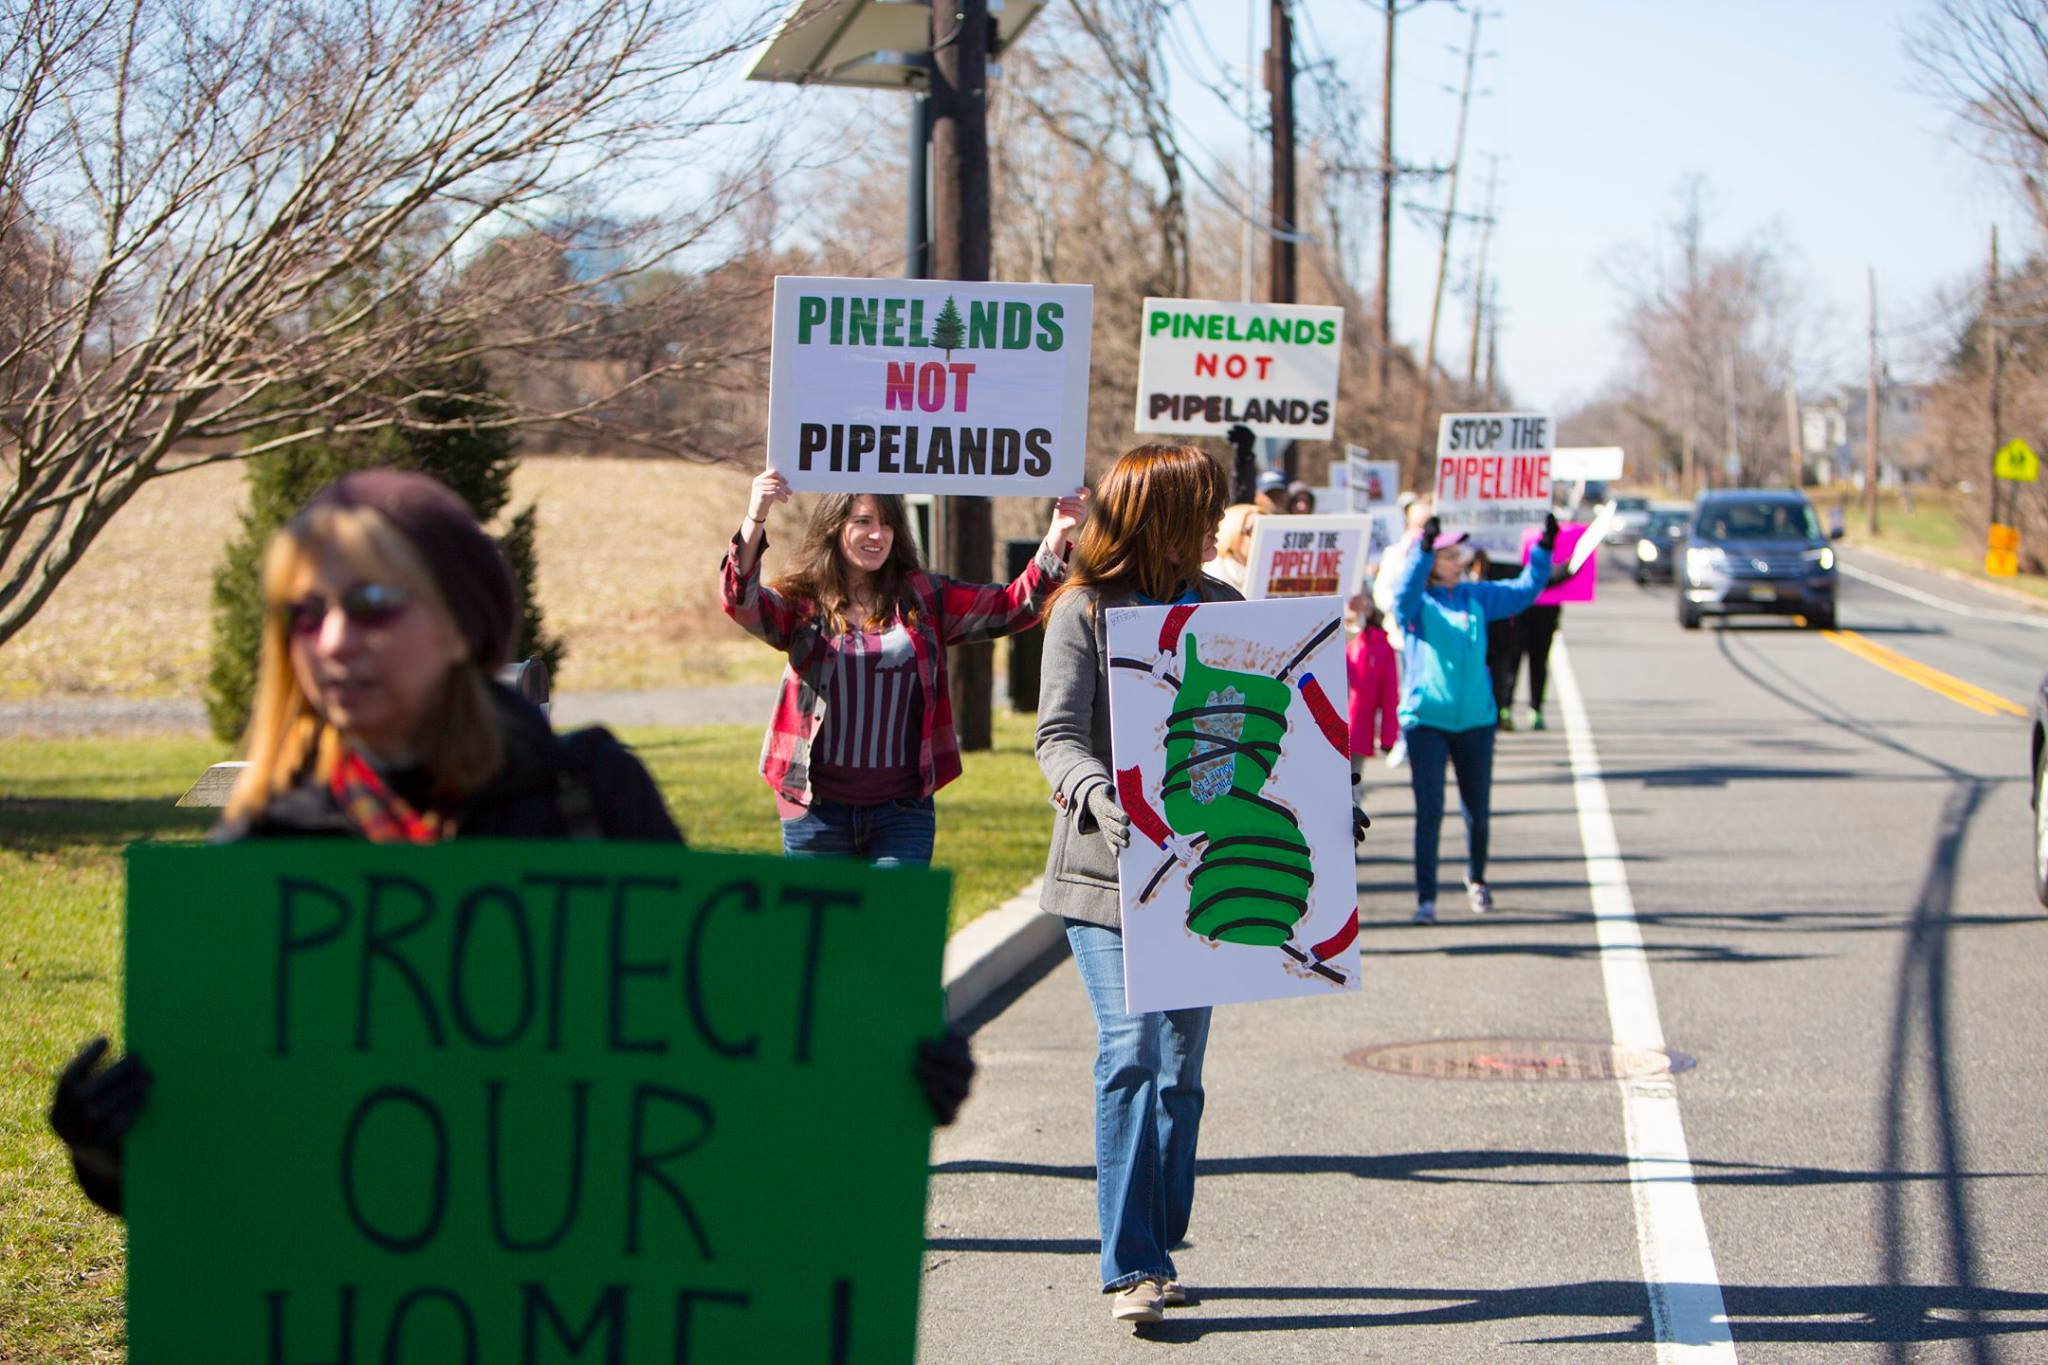 Citizens protesting gas pipelines in the new jersey pine barrens pinelands